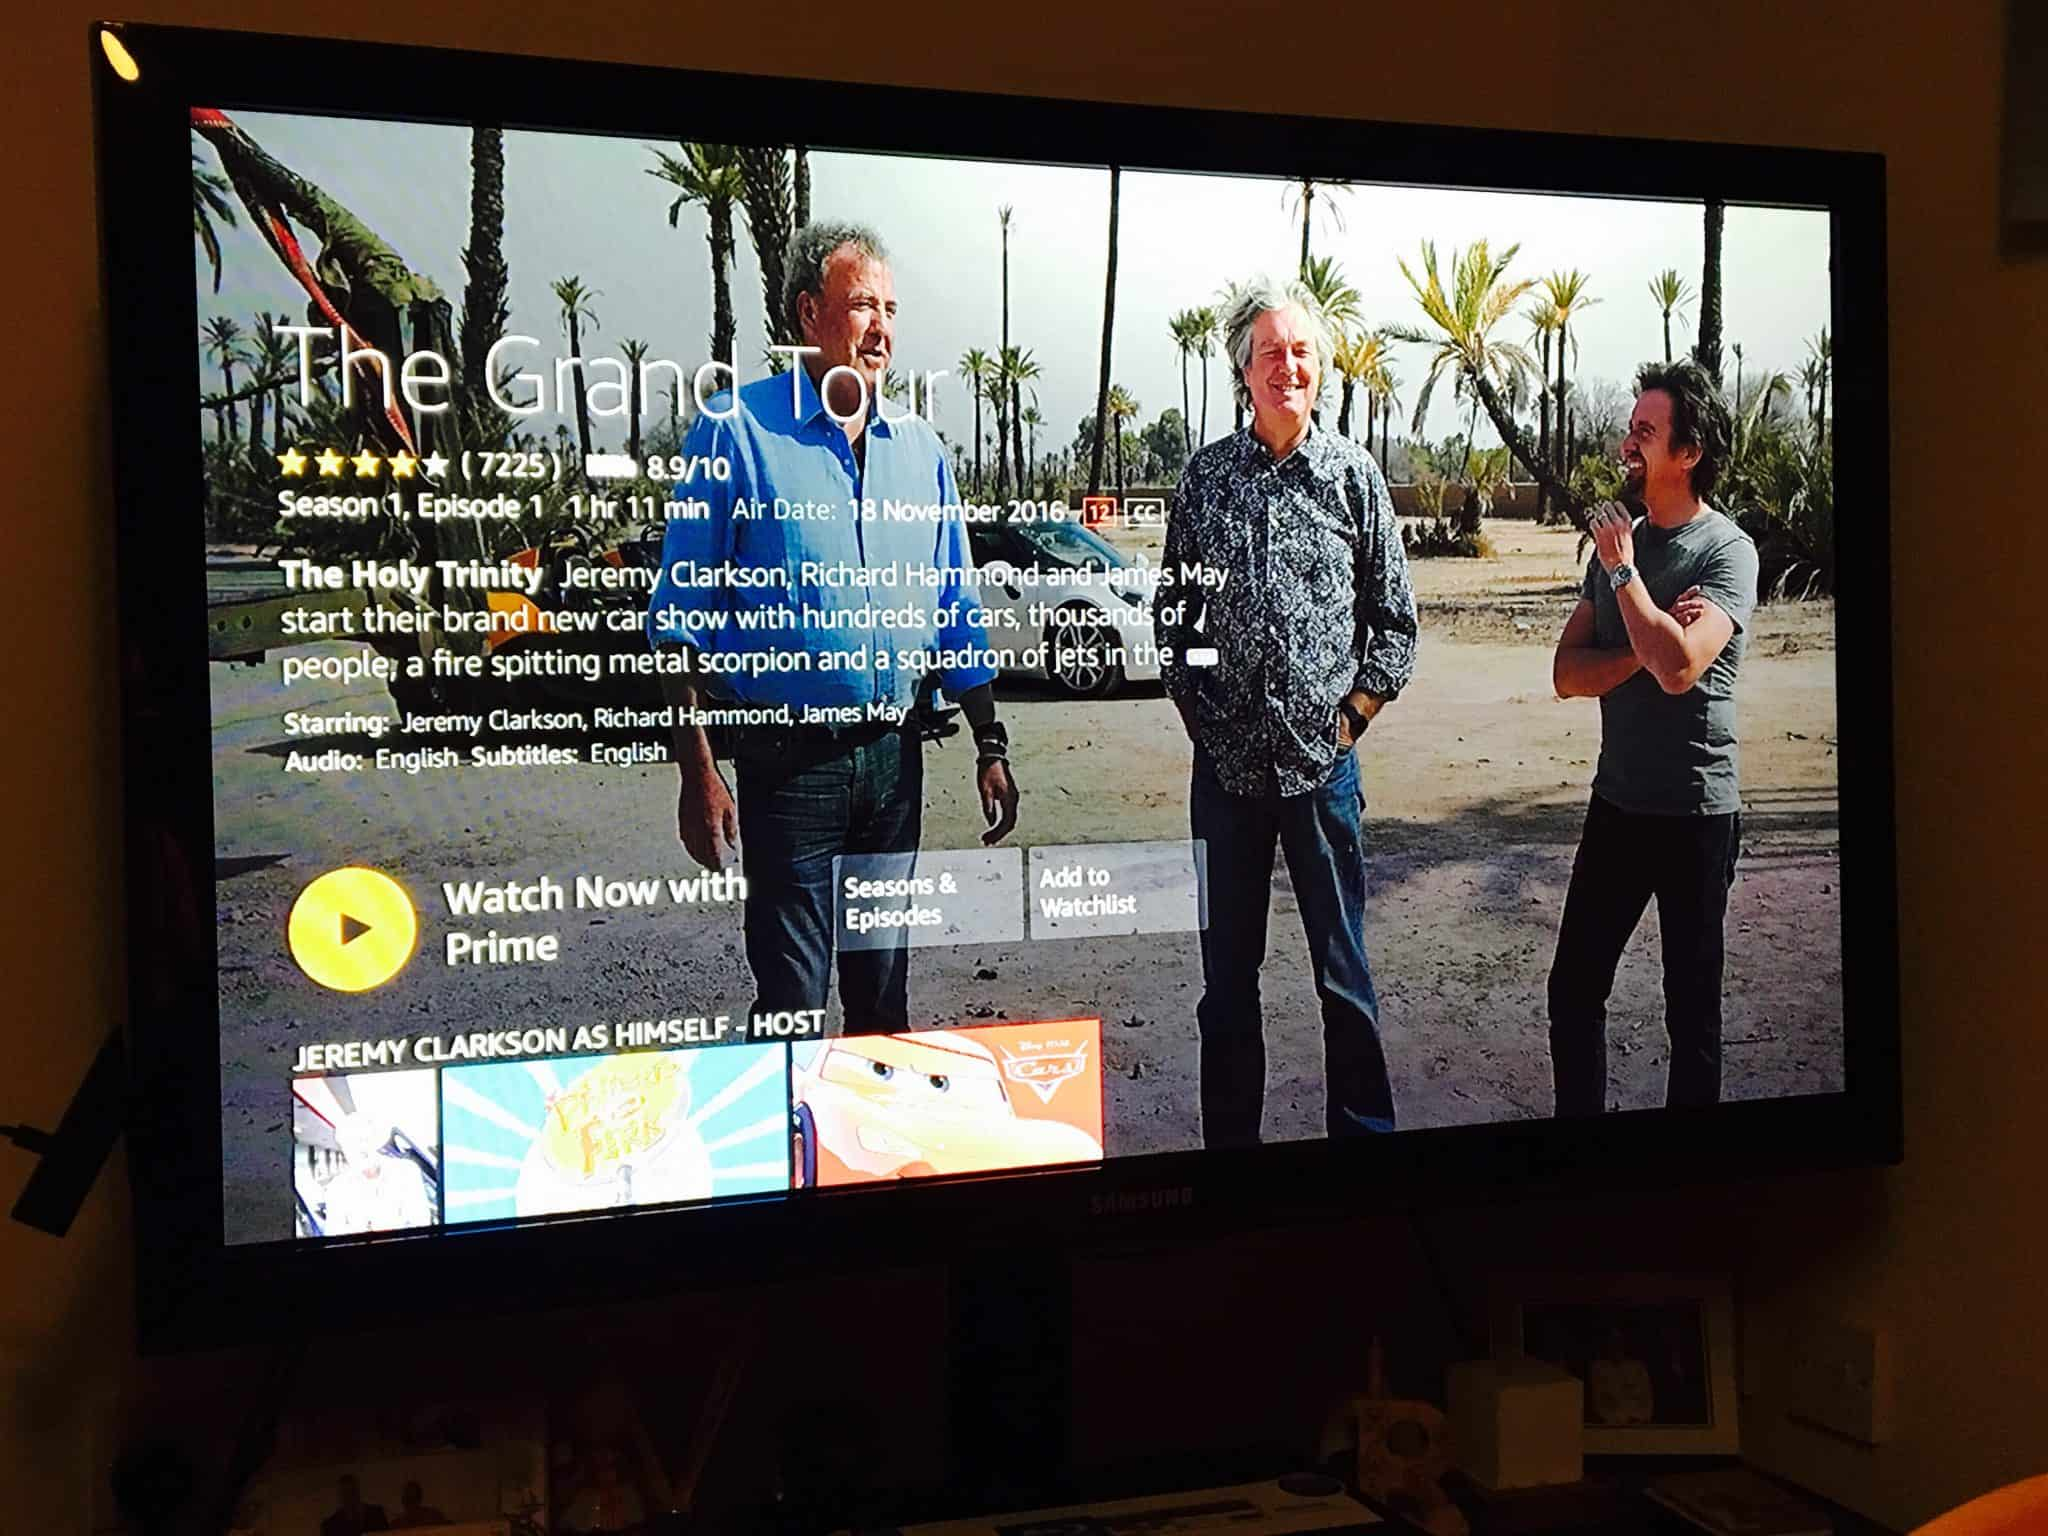 The Grand Tour with Amazon Prime